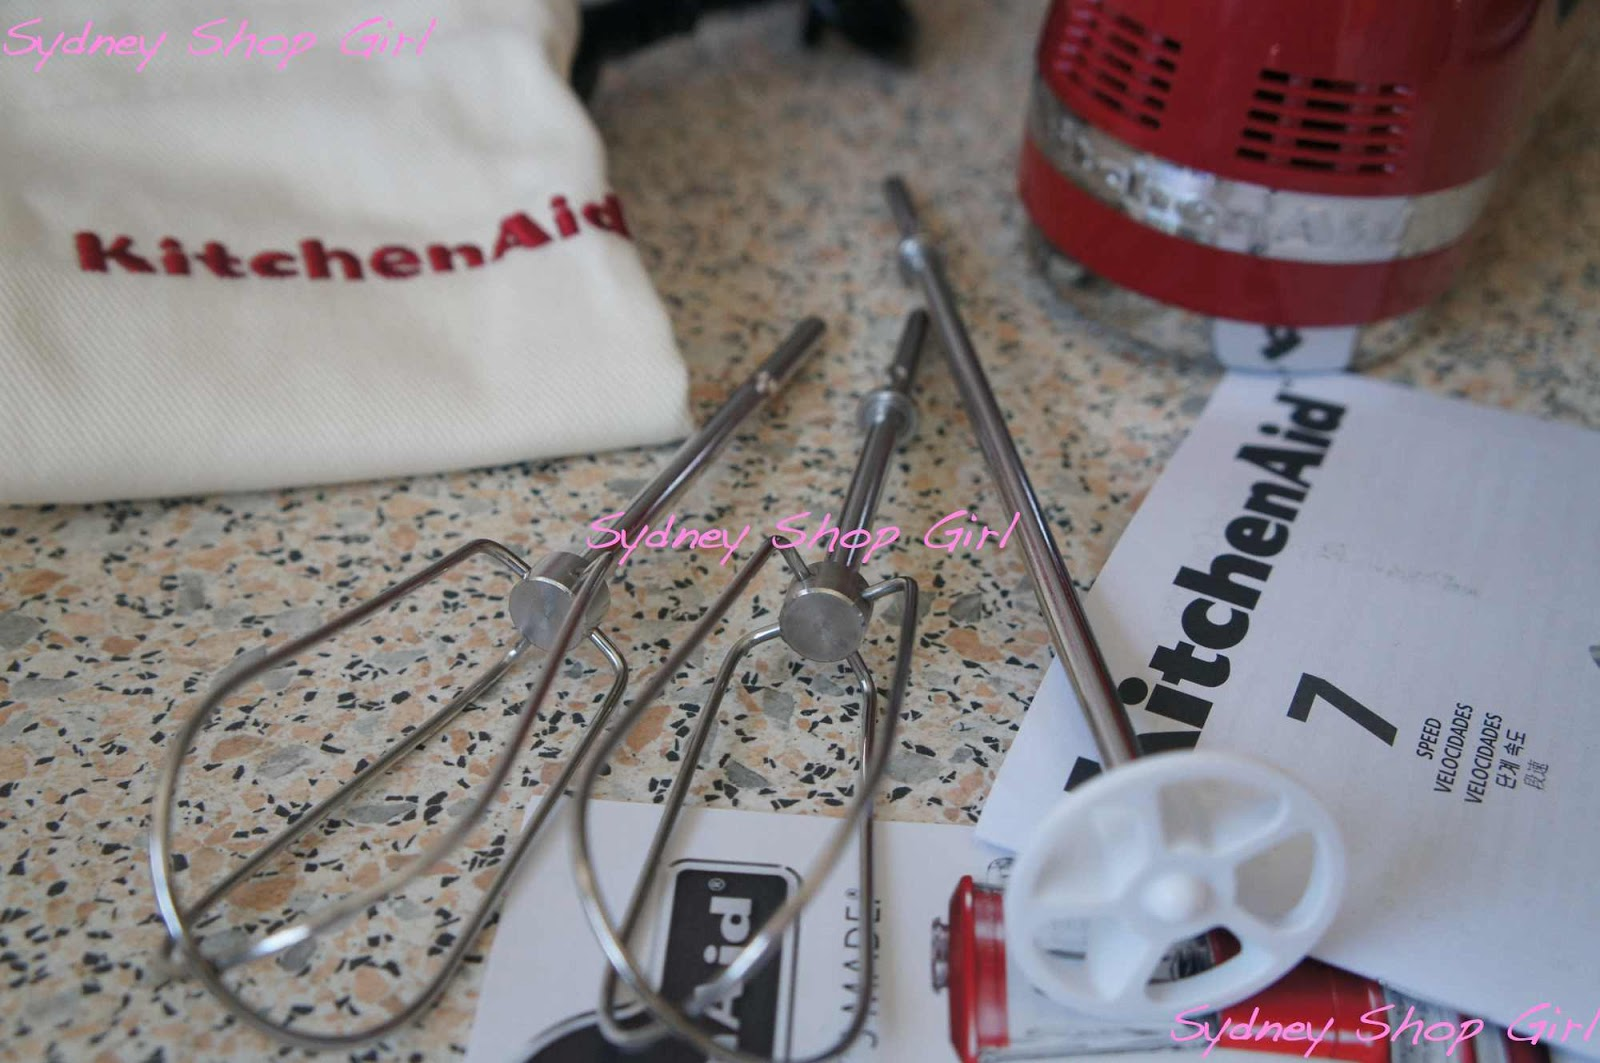 Sydney Shop Girl: Bundie and Cake? A KitchenAid 7 Speed Hand Mixer ...